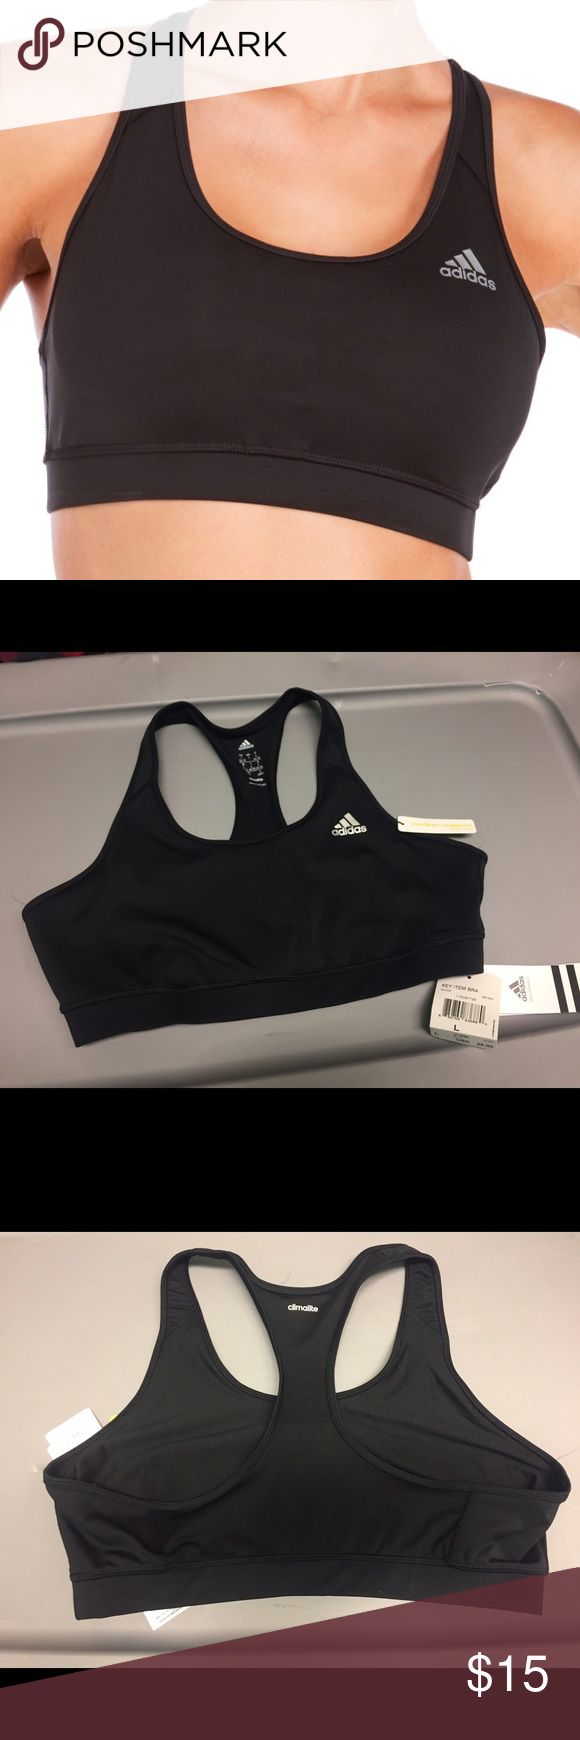 """NWT Adidas Medium Support Black Sports Bra Adidas """"climalite"""" medium support black sports bra with silver logo. """"Climalite"""" keeps your body dry by drawing sweat away from the skin. Comfy and great condition - new with tags! Women's size large. Originally $25. Adidas Intimates & Sleepwear Bras"""